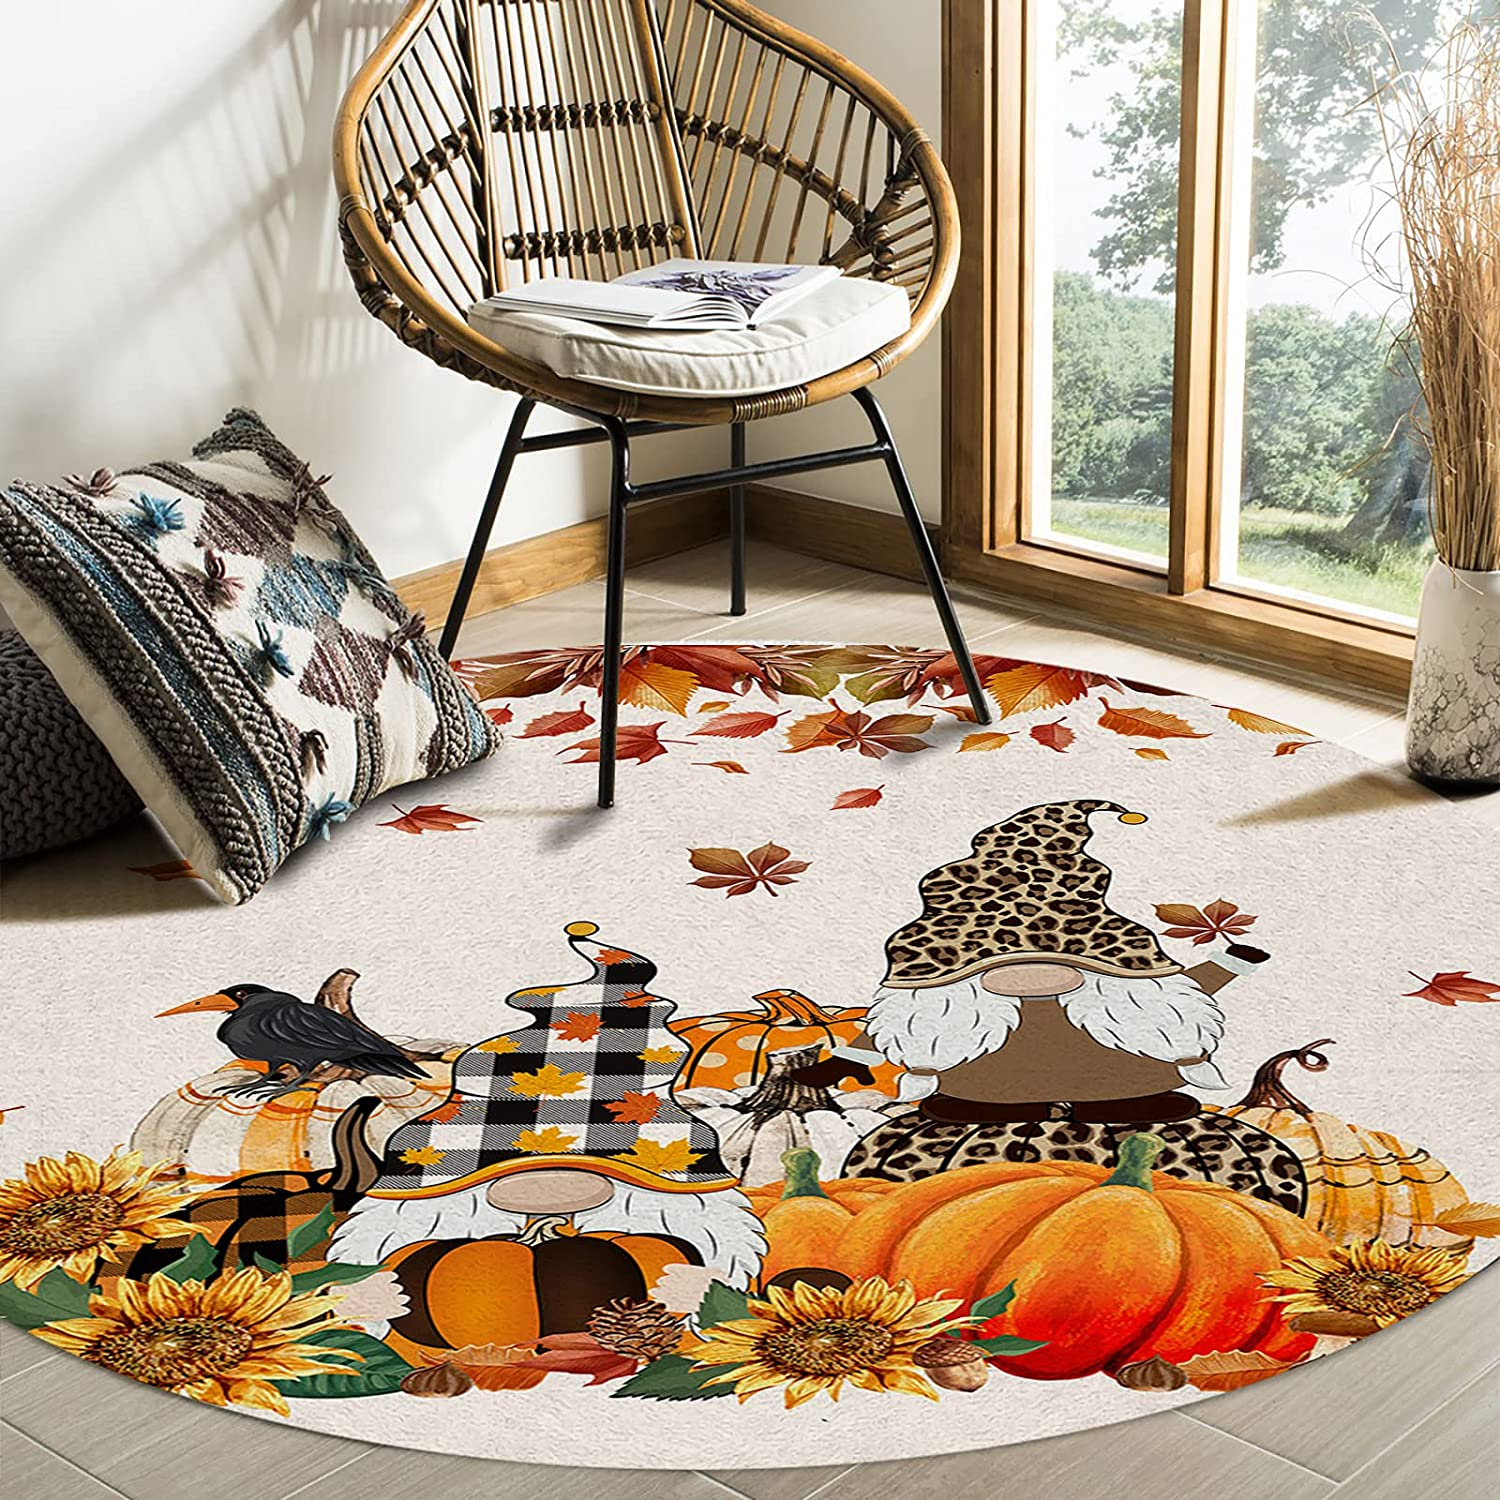 FunDecorArt Large Area Max 89% OFF New arrival Rugs Carpet 6 for Feet Bedroom Roo Living